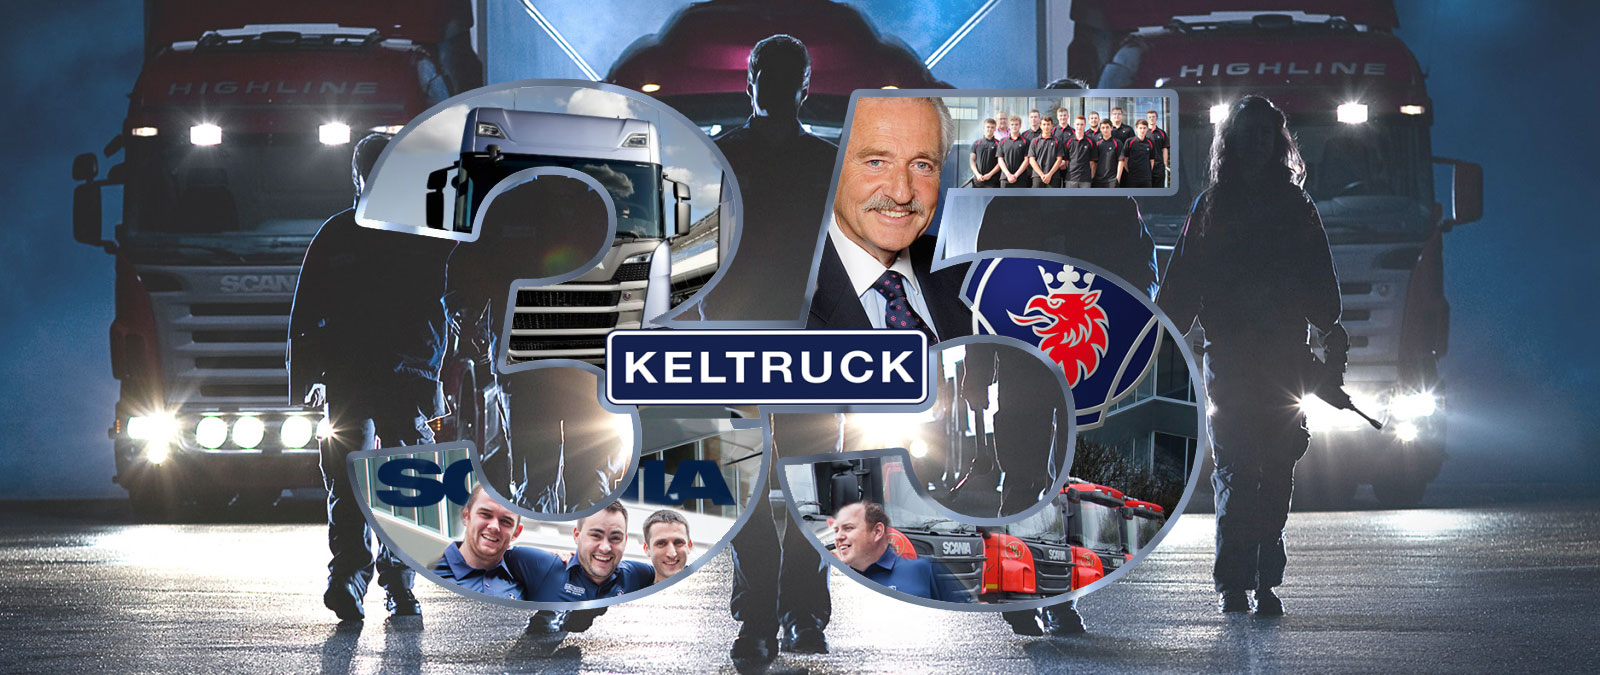 Keltruck Scania 35th anniversary in 2018